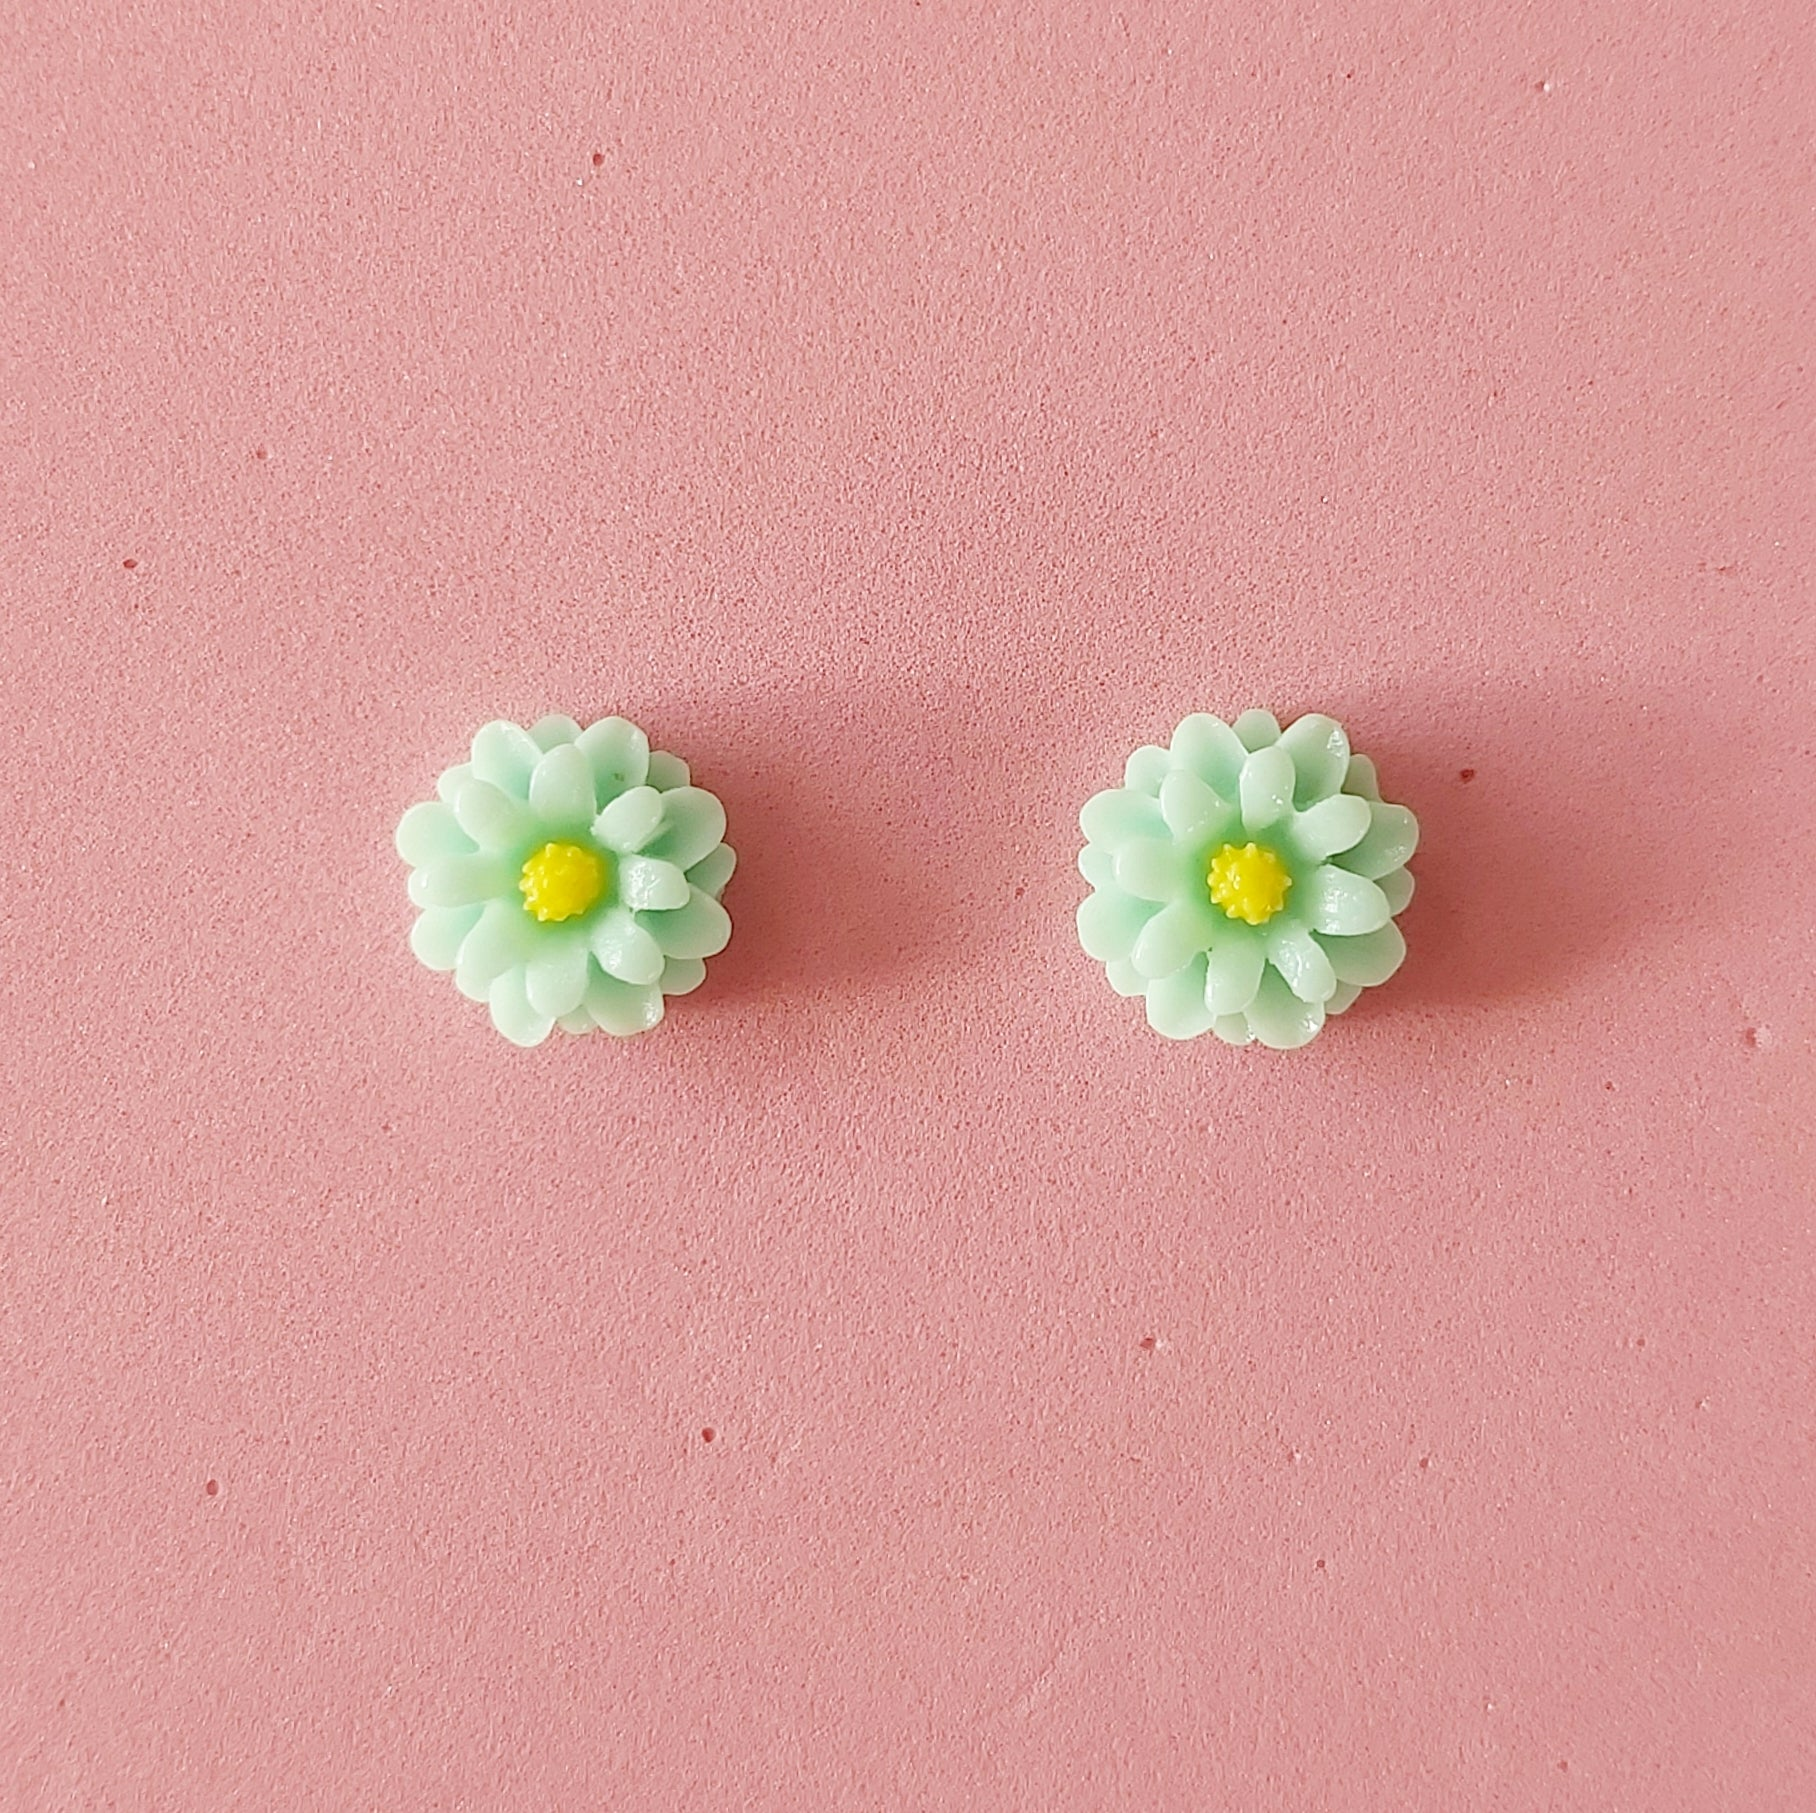 Mint green daisy flower studs